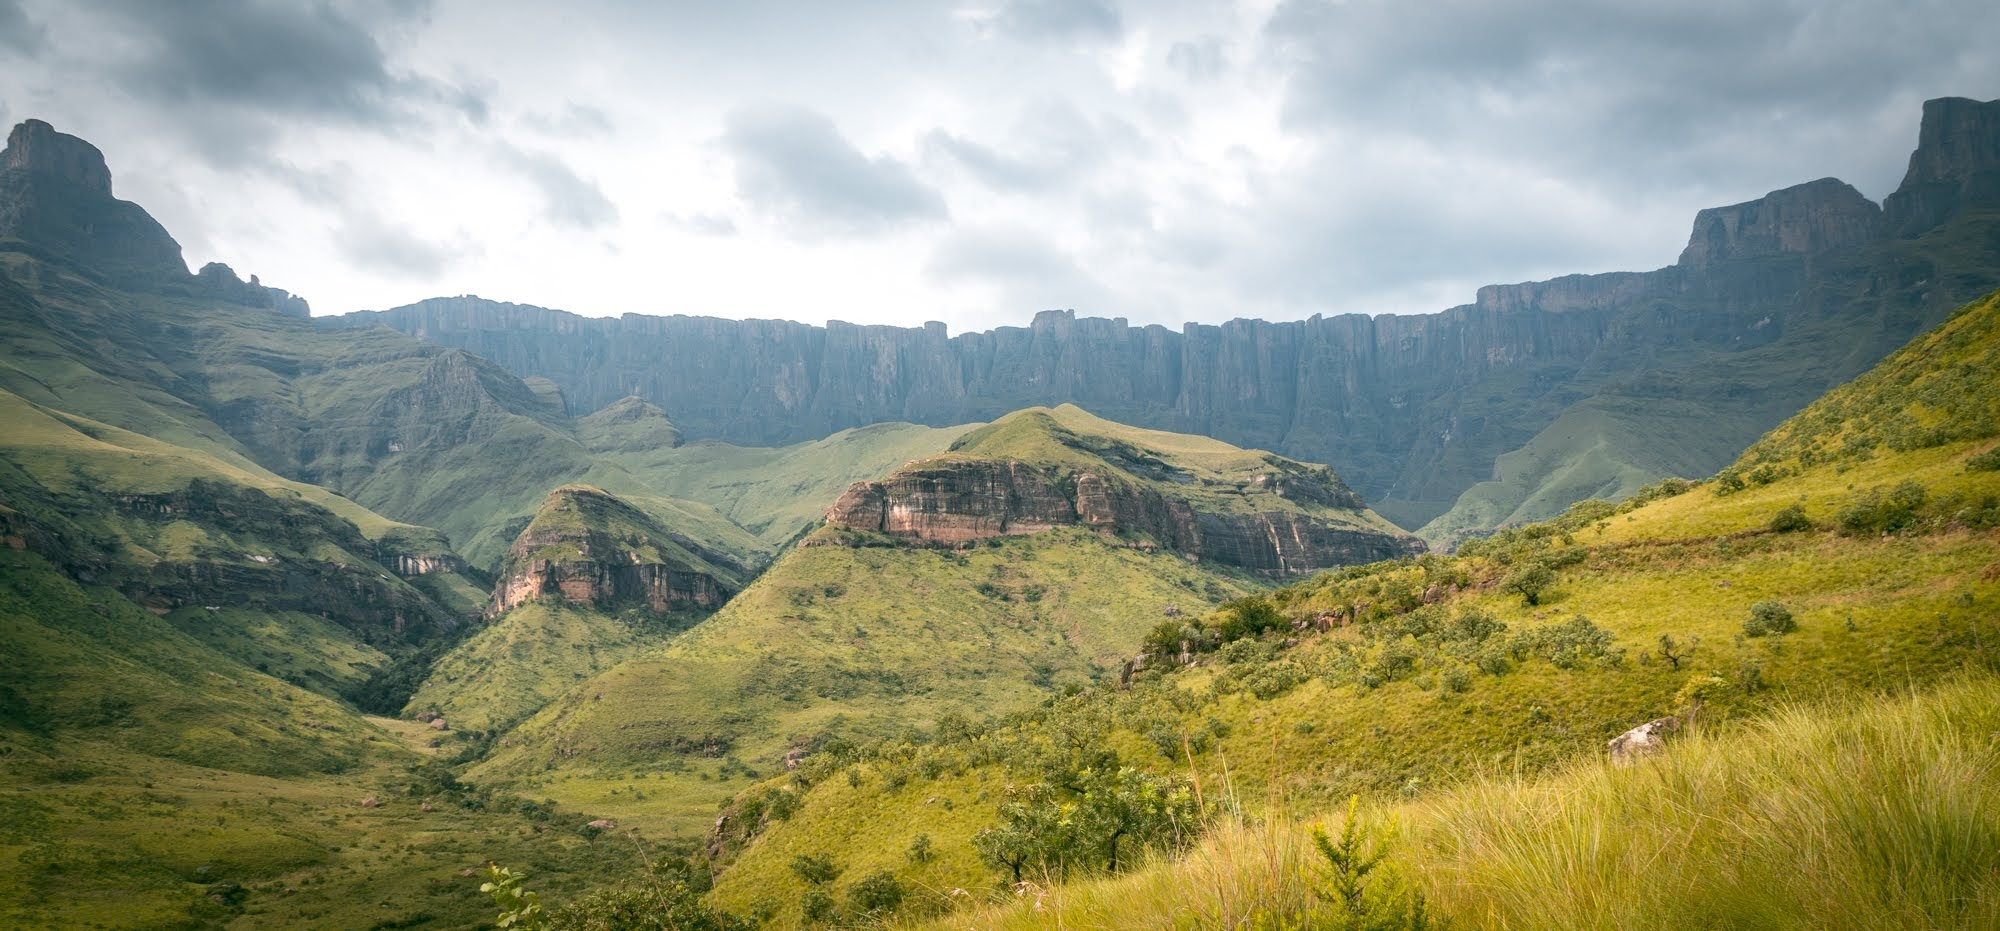 The amphitheater section of Drakensberg Mountain range